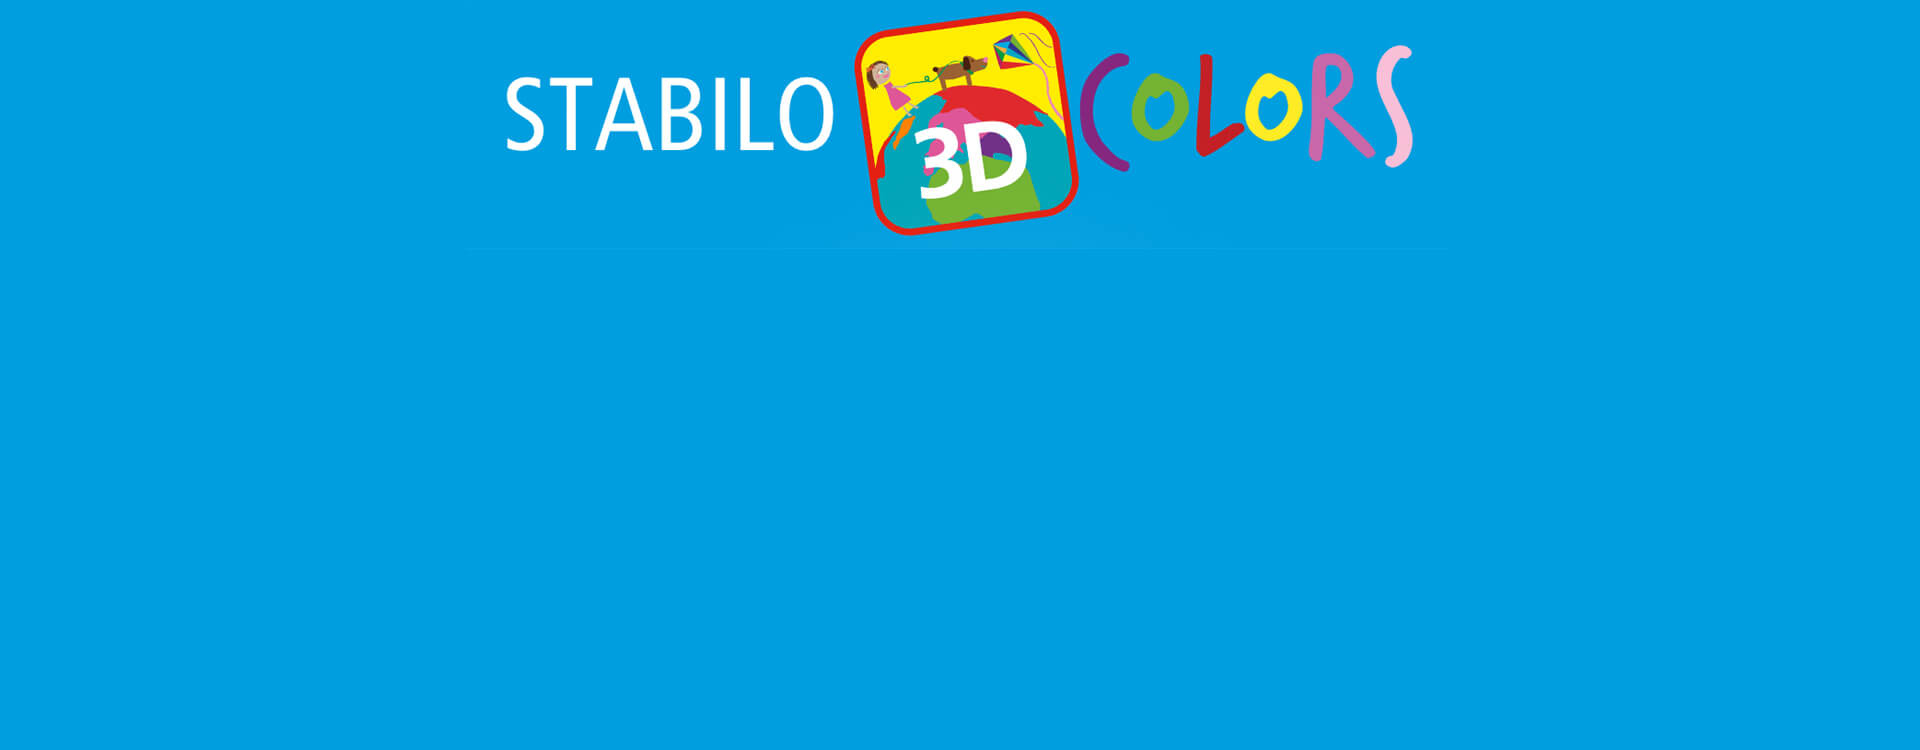 STABILO 3D Colors - www.stabilo.at